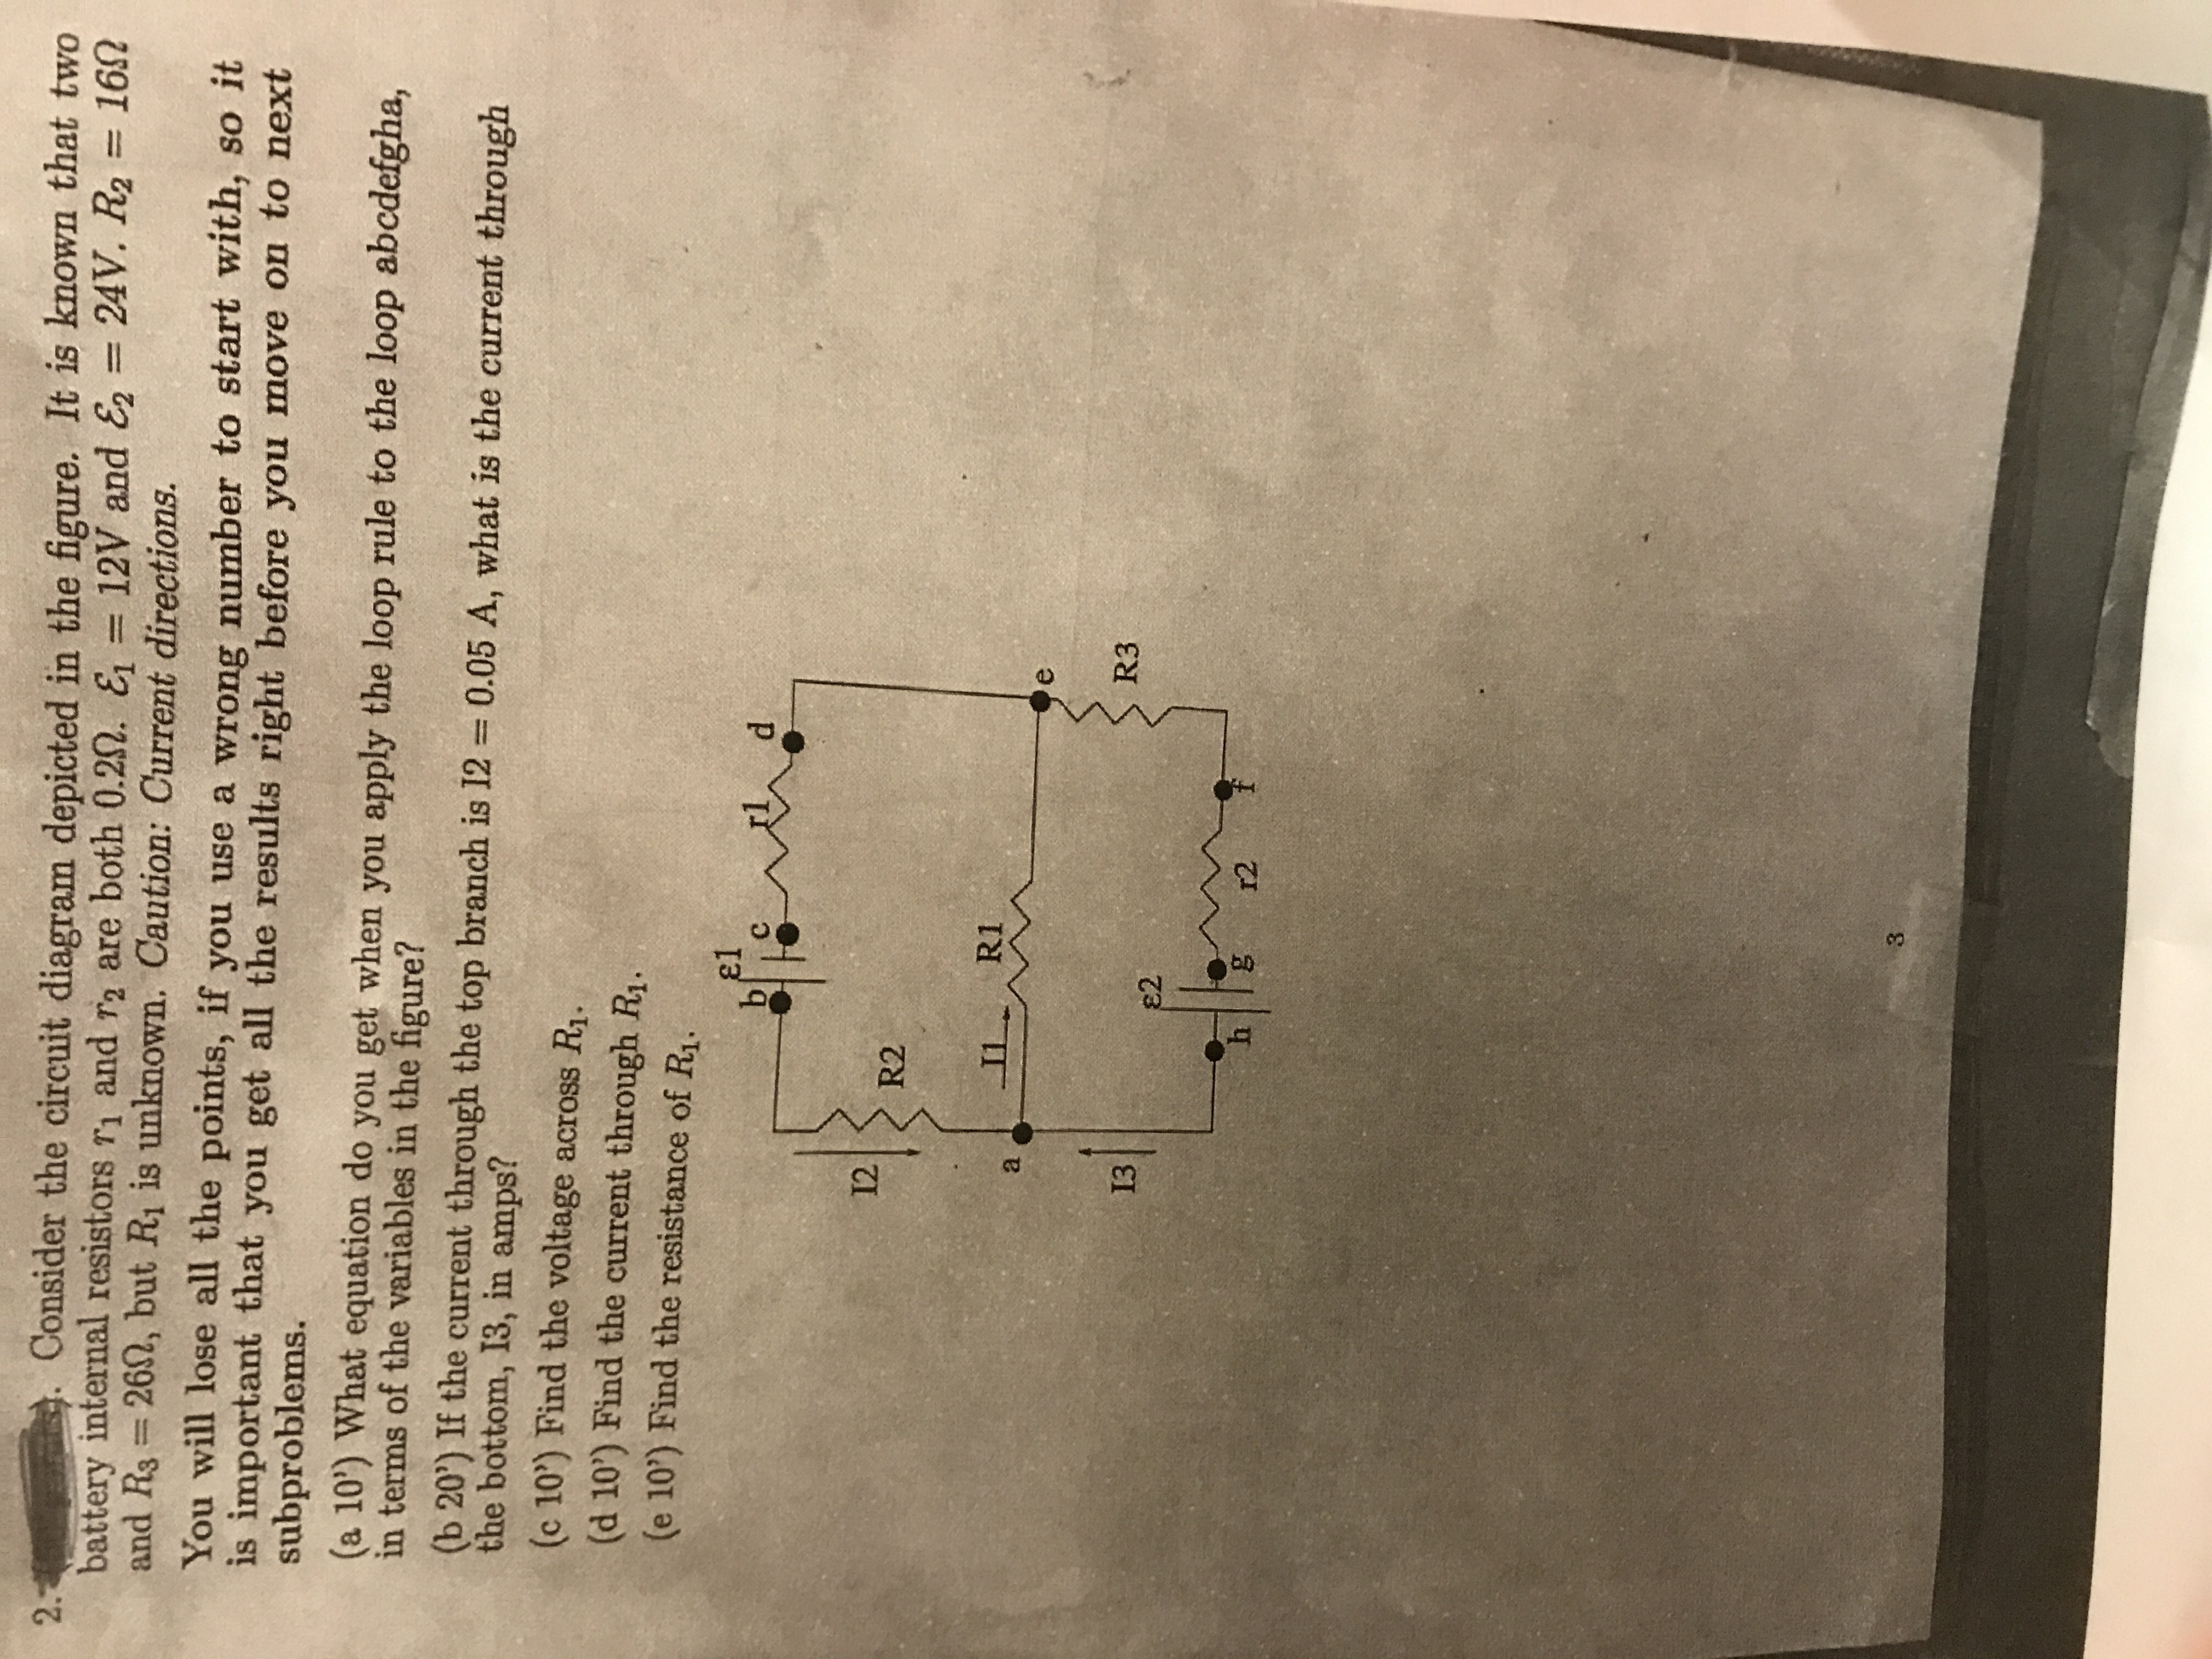 Consider the circuit diagram depicted in the fgure. It is known that two battery internal resistors r1and r2 are both 0.2Ω· = 12V and & = 24V. R2 16Ω 2. and Rs 262, but Ri is unknown. Caution: Current directions. You will lose all the points, if you use a wrong number to start with, so i is important that you get all the results right before you move on to n , subproblems (a 10) What equation do you get when you apply the loop rule to the loop abcdefgha, in terms of the variables in the figure? b 20) If the current through the top branch is 12 0.05 A, what is the current through the bottom, 13, in amps? (c 10) Find the voltage across R1. (d 10') Find the current through Ri. (e 10) Find the resistance of Ri. el 12 R2 R3 13 2 h g12 3